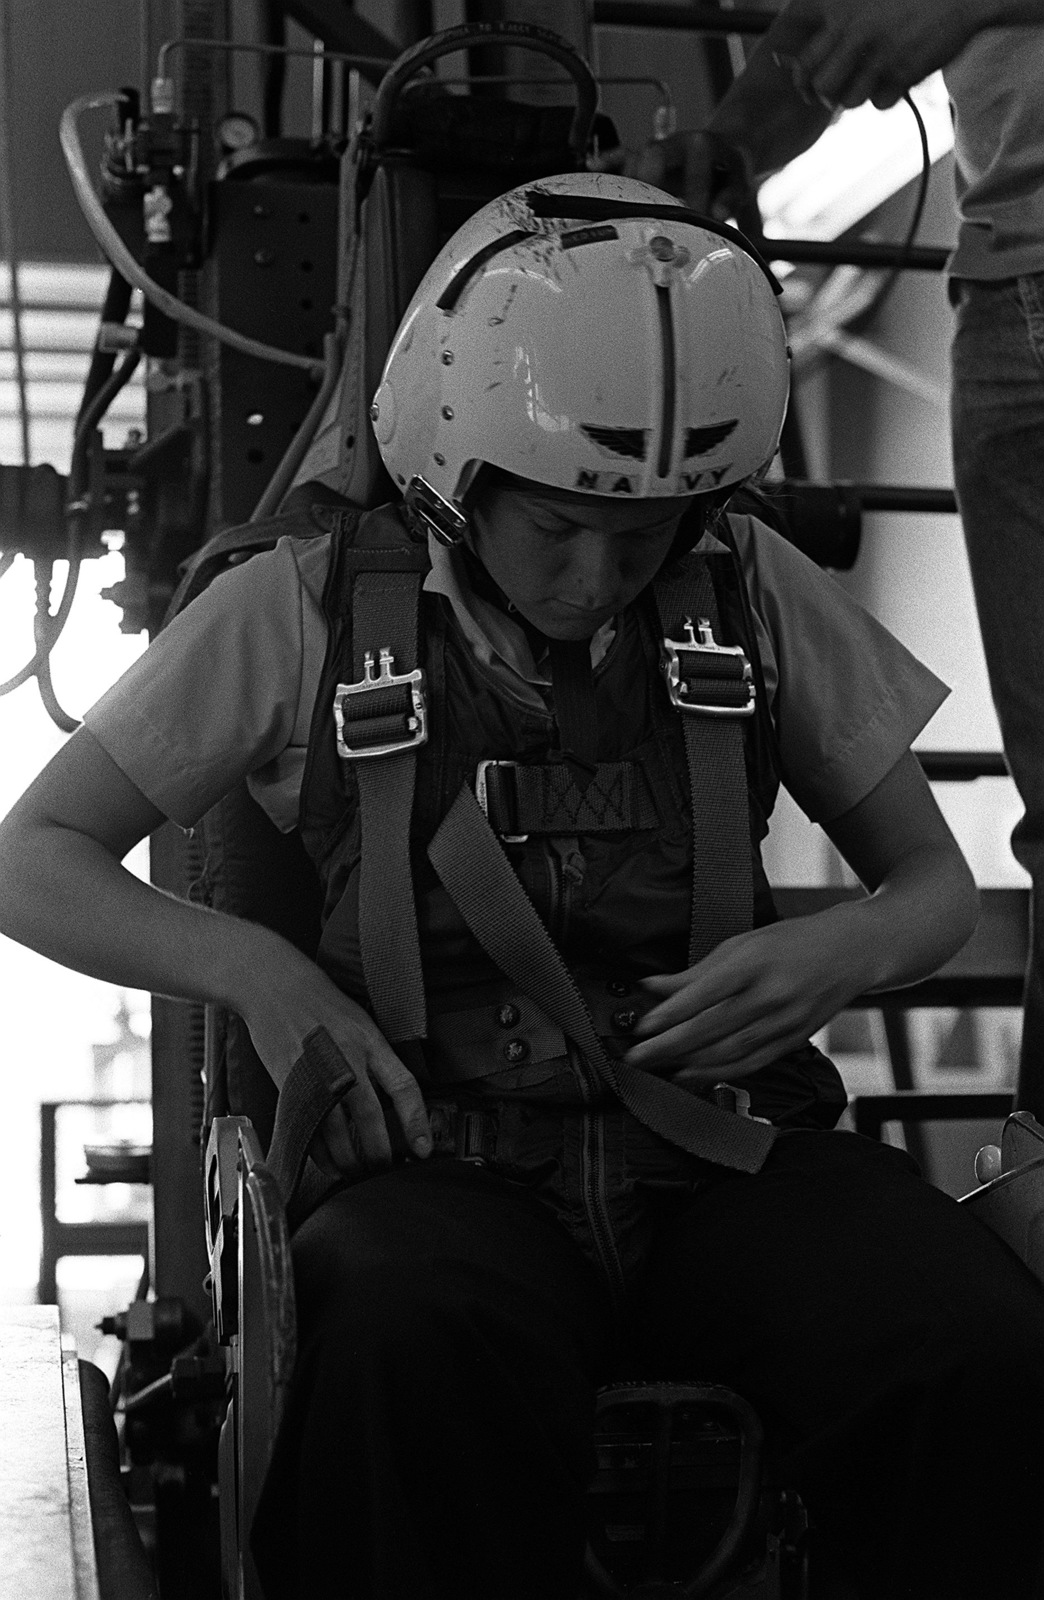 A female midshipman tightens the torso harness on an ejection seat trainer. Ejection seat training is part of a one-week aviation training program for students enrolled in the Naval Reserve Officers Training Corps (NROTC)